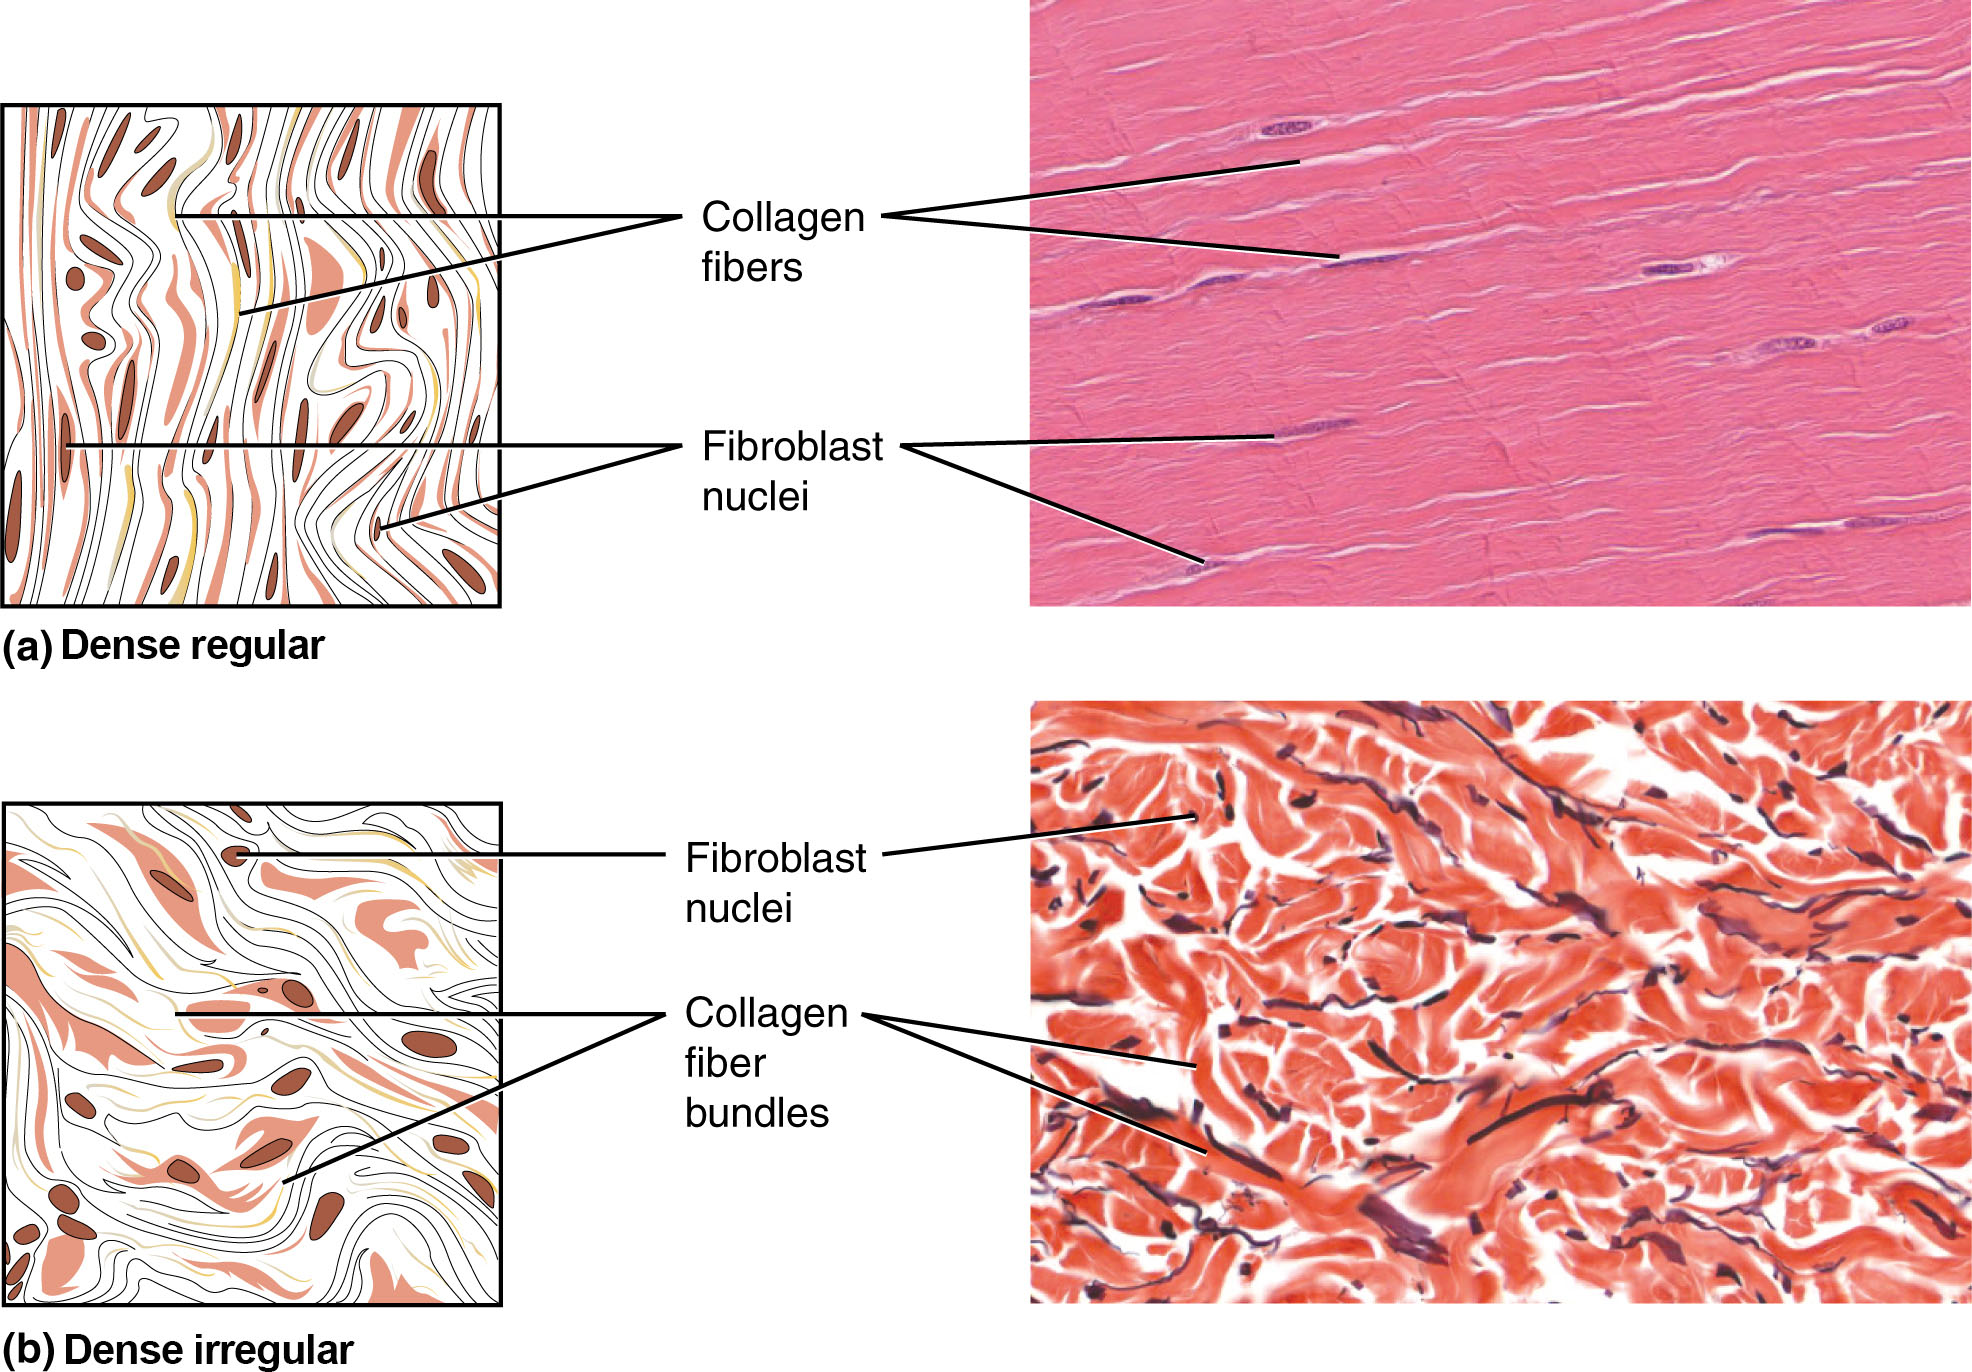 Part A shows a diagram of regular dense connective tissue alongside a micrograph. The tissue is composed of parallel, thread-like collagen fibers running vertically through the diagram. Between the vertical fibers, several dark, oval shaped fibroblast nuclei are visible. In the micrograph, the whitish collagen strands run horizontally. Several dark purple fibroblast nuclei are embedded in the lightly stained matrix. Part B shows a diagram of irregular dense connective tissue on the left and a micrograph on the right. In the diagram, the collagen fibers are arranged in bundles that curve and loop throughout the tissue. The fibers within a bundle run parallel to each other, but separate bundles crisscross throughout the tissue. Because of this, the irregular dense connective tissue appears less organized than the regular dense connective tissue. This is also evident in the micrograph, where the white collagen bundles radiate throughout the micrograph in all directions. The fibroblasts are visible as red stained cells with dark purple nuclei.